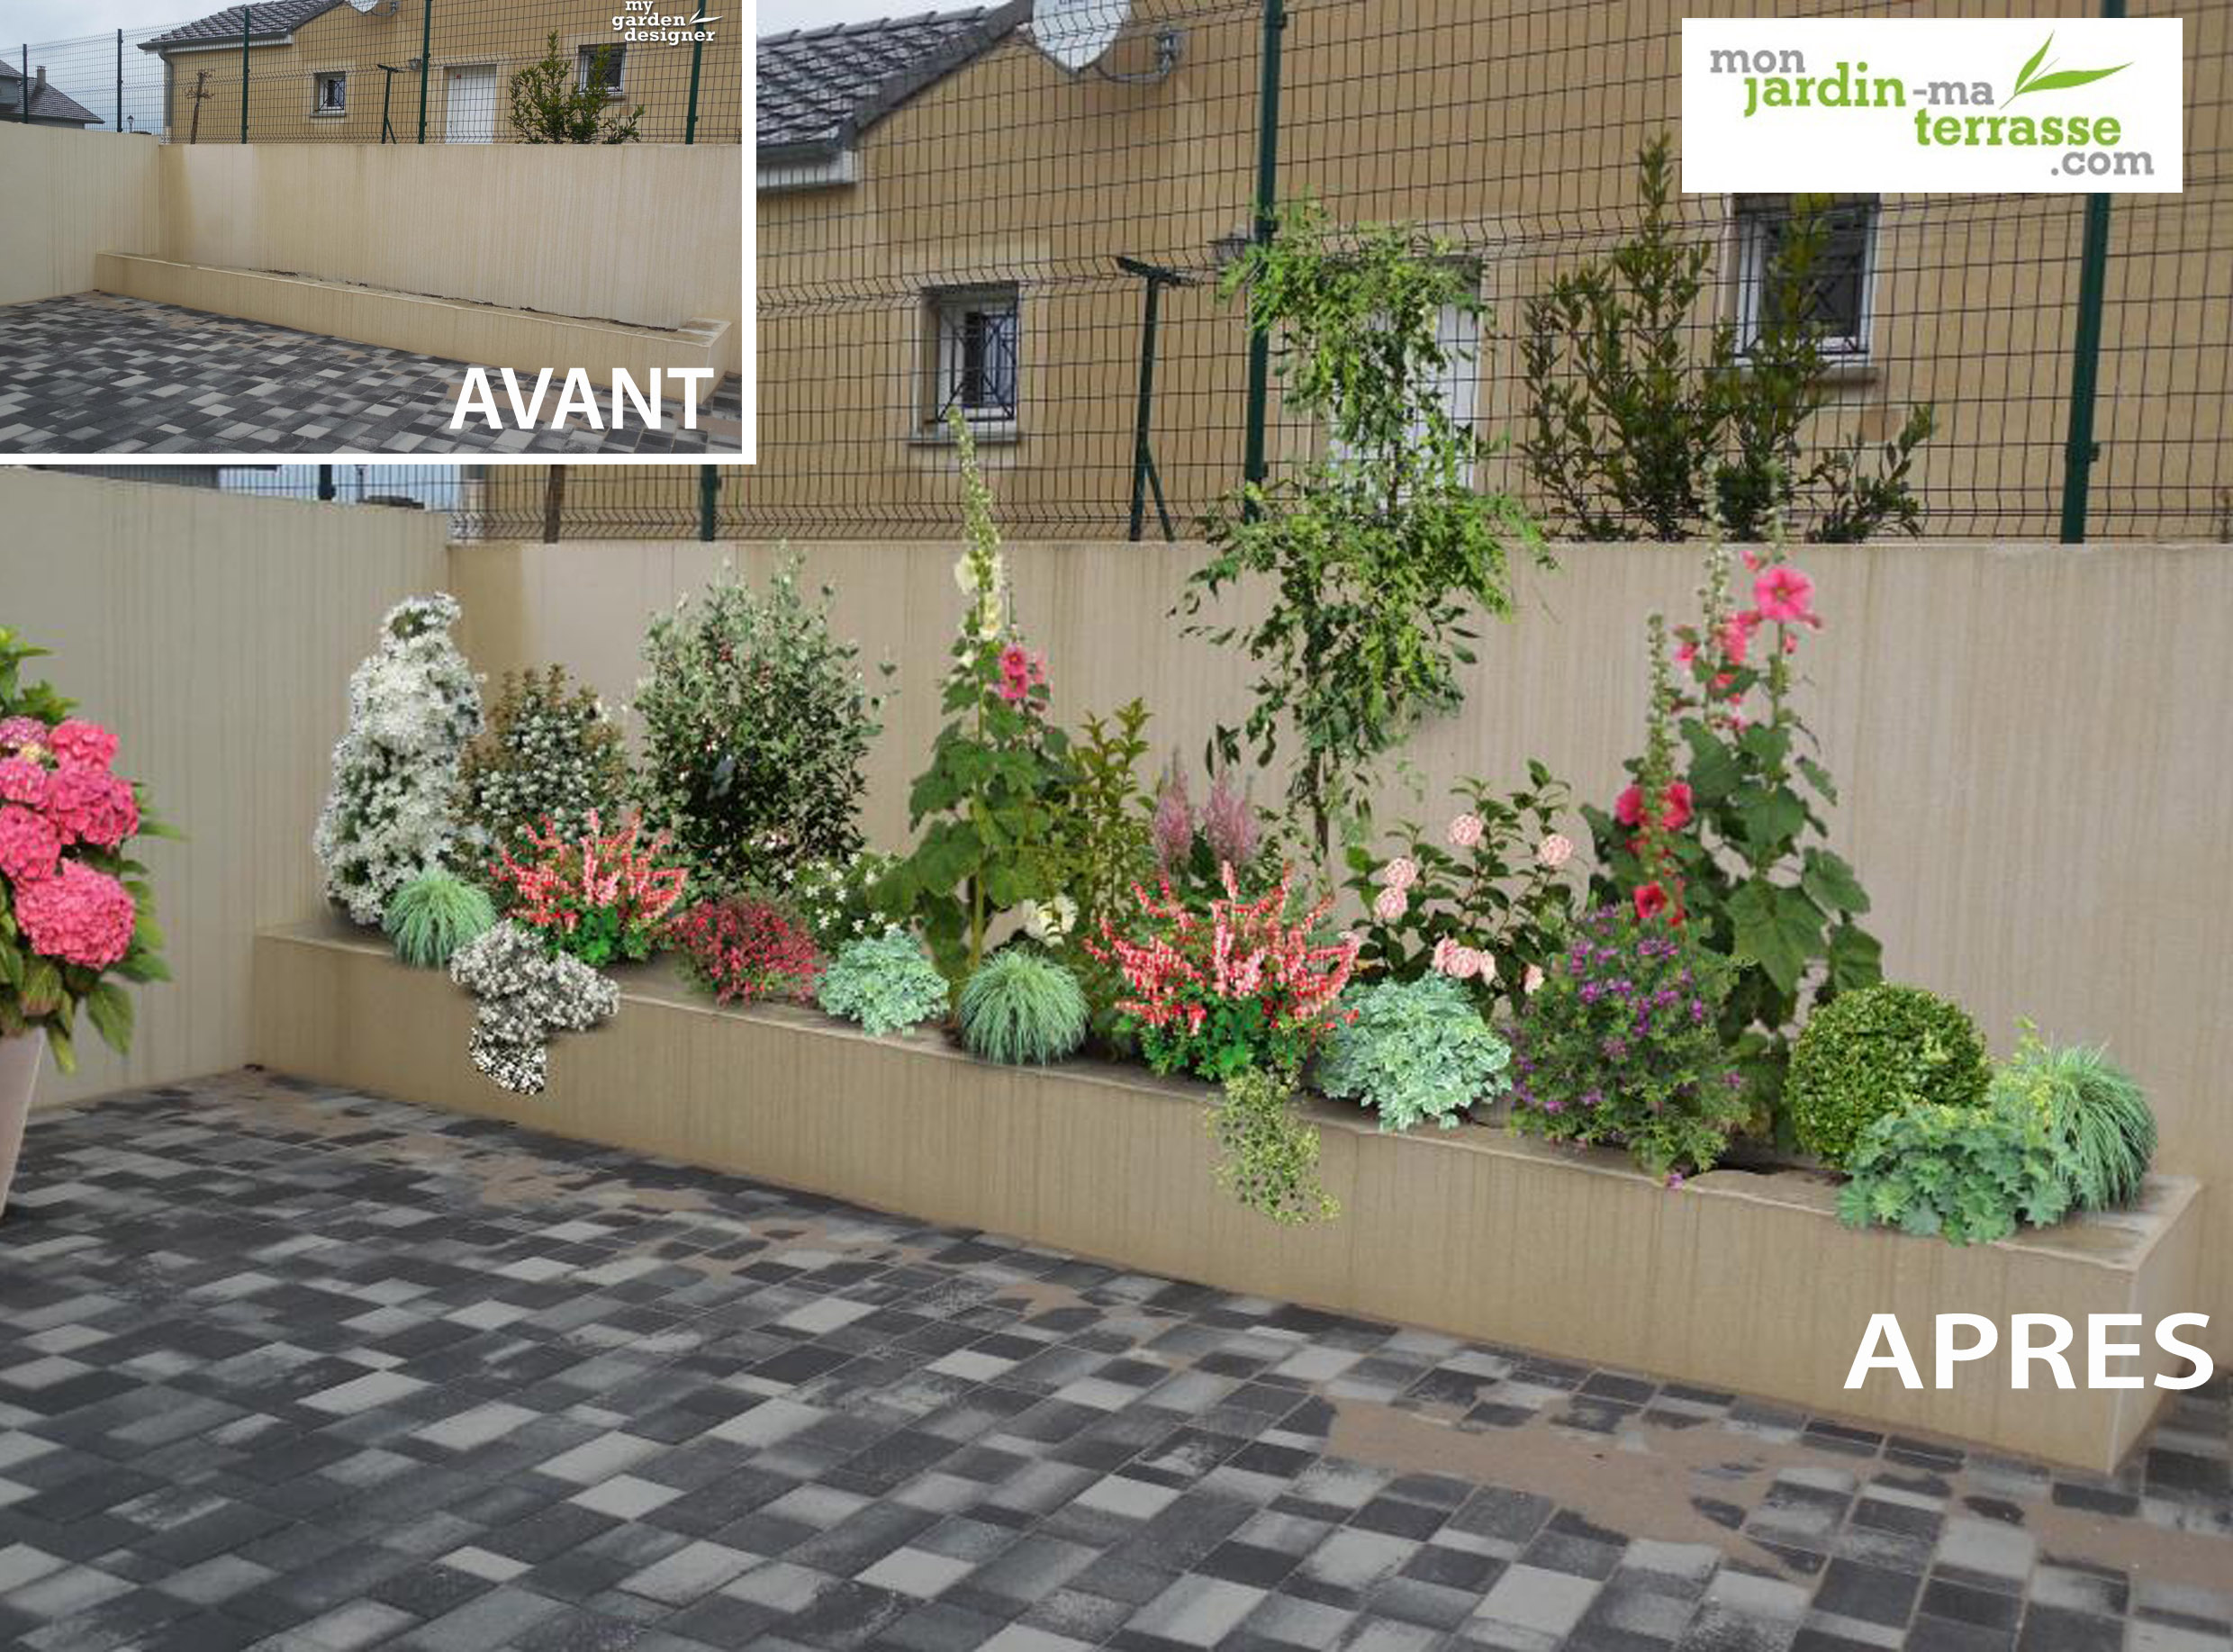 Amenagement jardiniere terrasse monjardin for Amenagement terrasse jardin